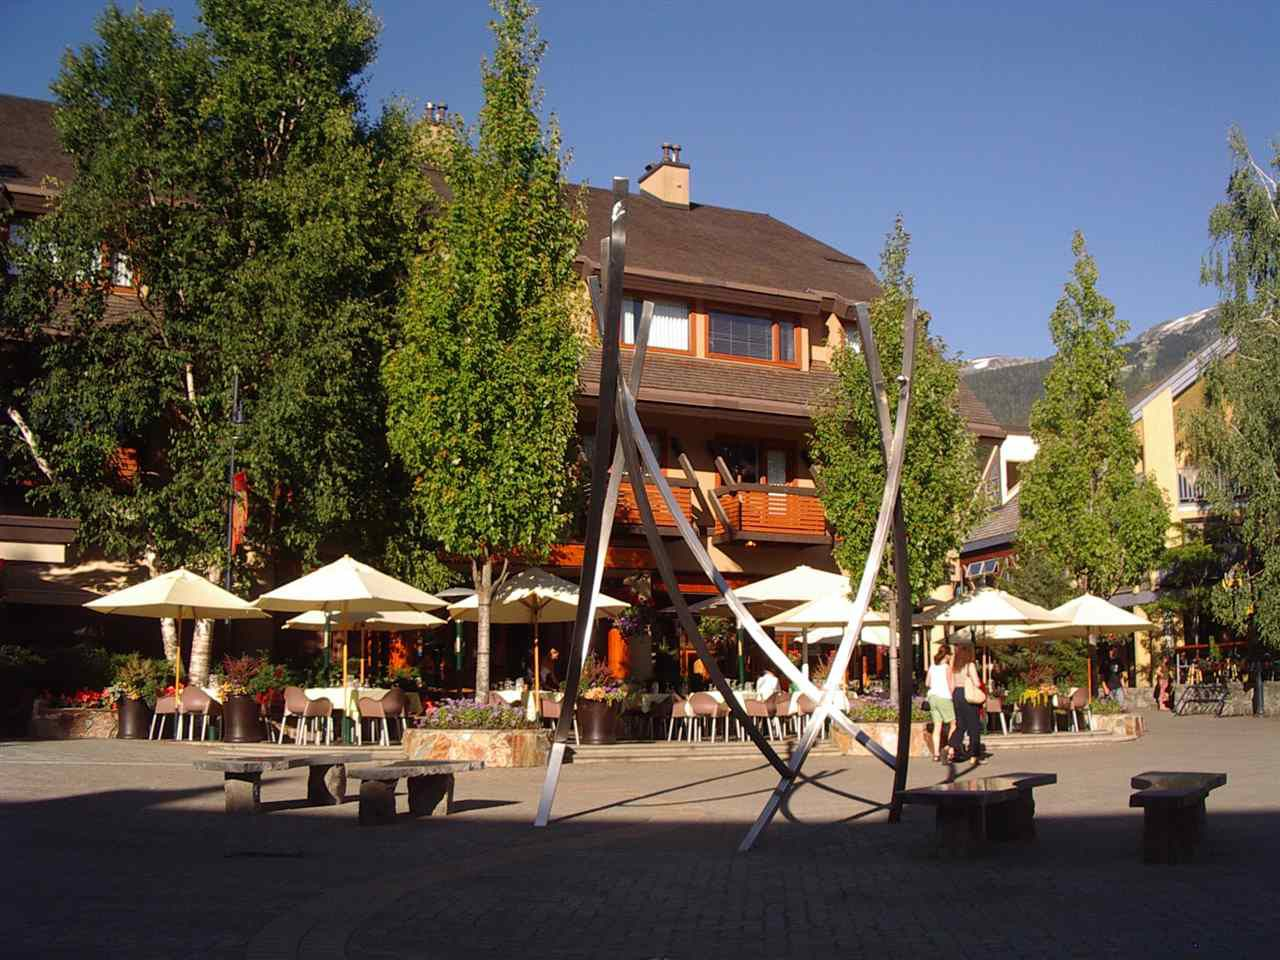 """Main Photo: 218 4220 GATE WAY Drive in Whistler: Whistler Village Condo for sale in """"BLACKCOMB LODGE"""" : MLS®# R2005633"""